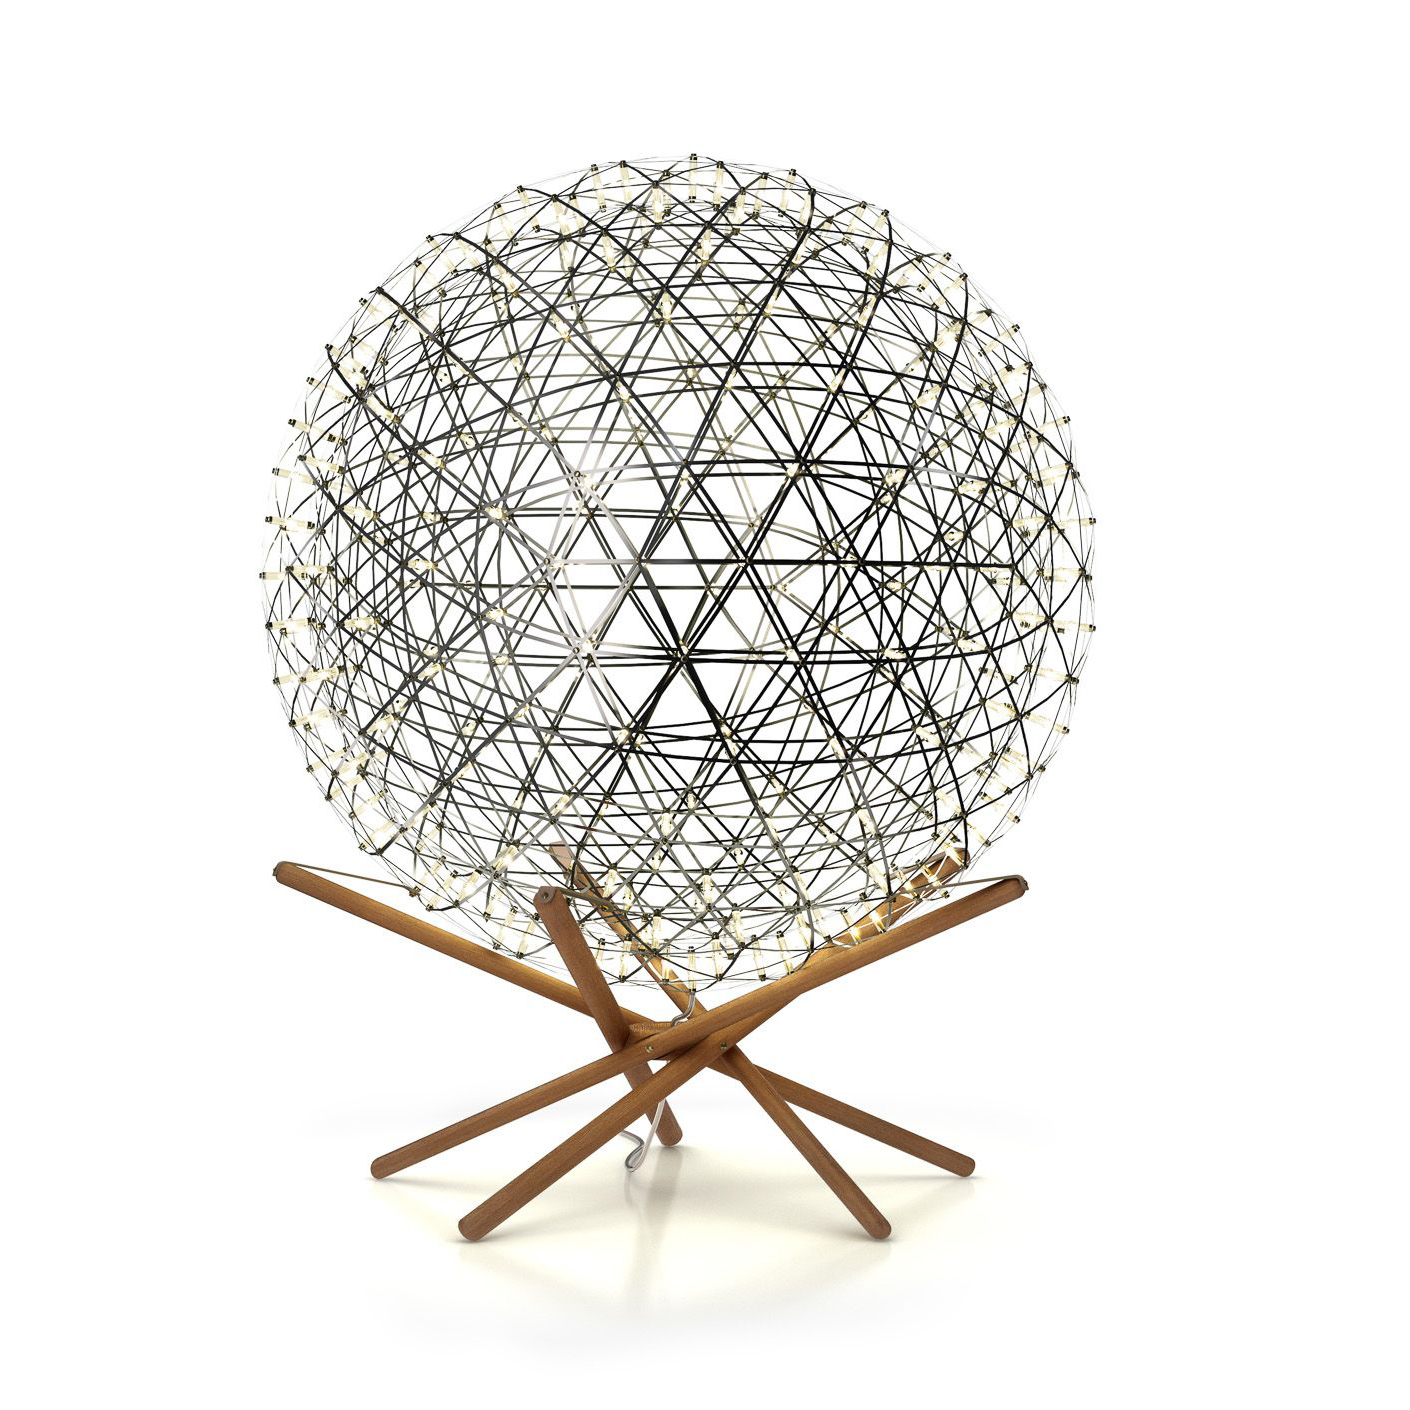 Tensegrity Floor Lamp by Moooi | CUMOLLEDRF89- for Moooi Raimond Zafu  5lpkxo